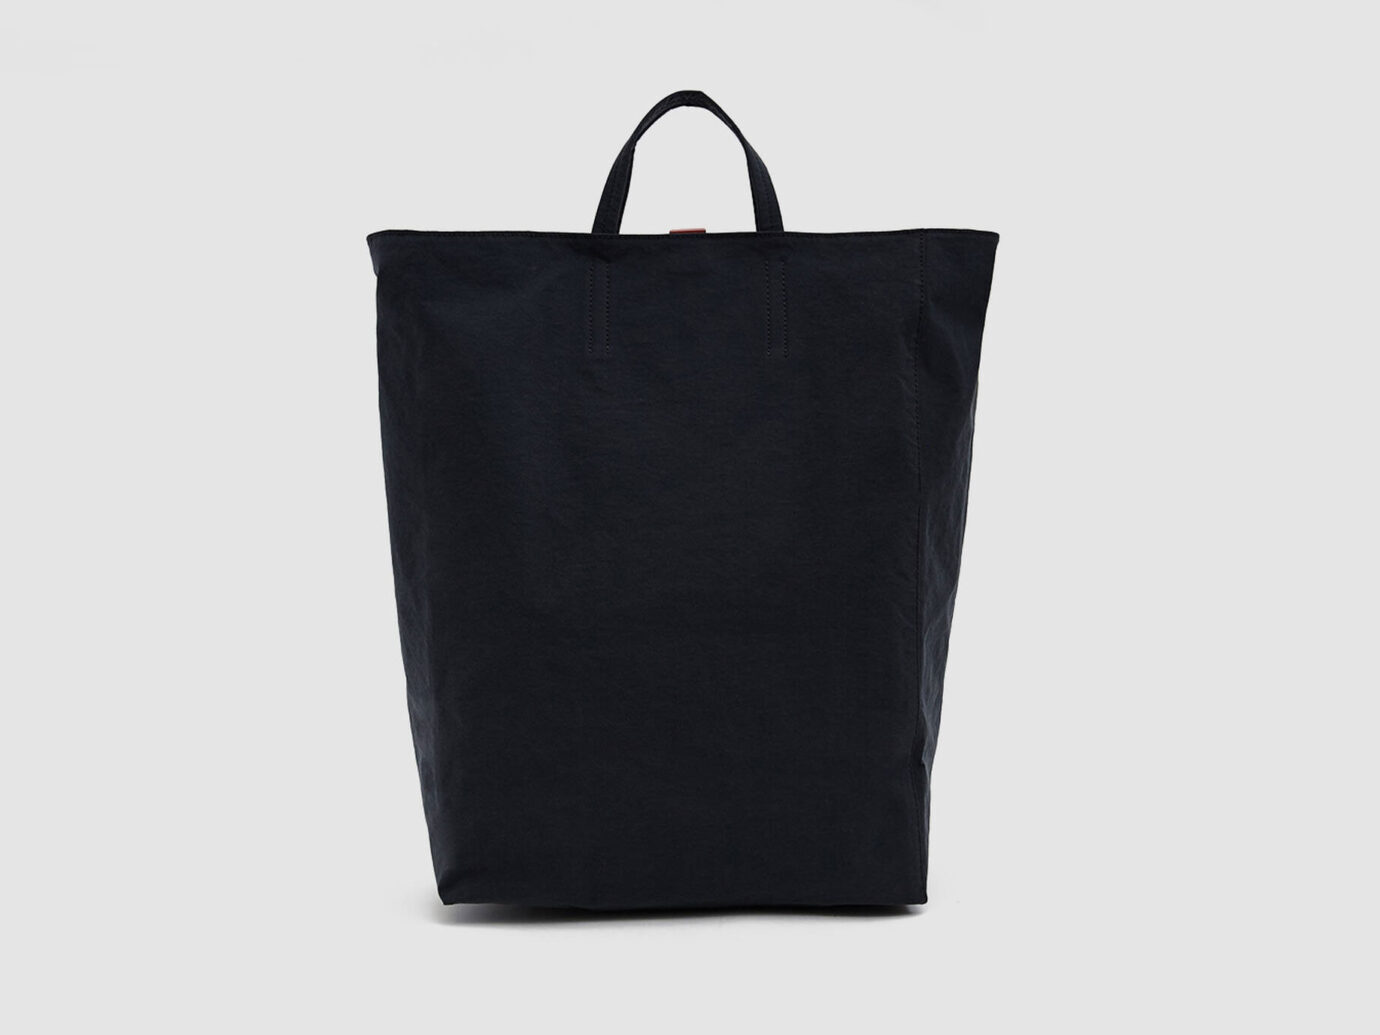 Acne Studios Baker Tote Bag in Black